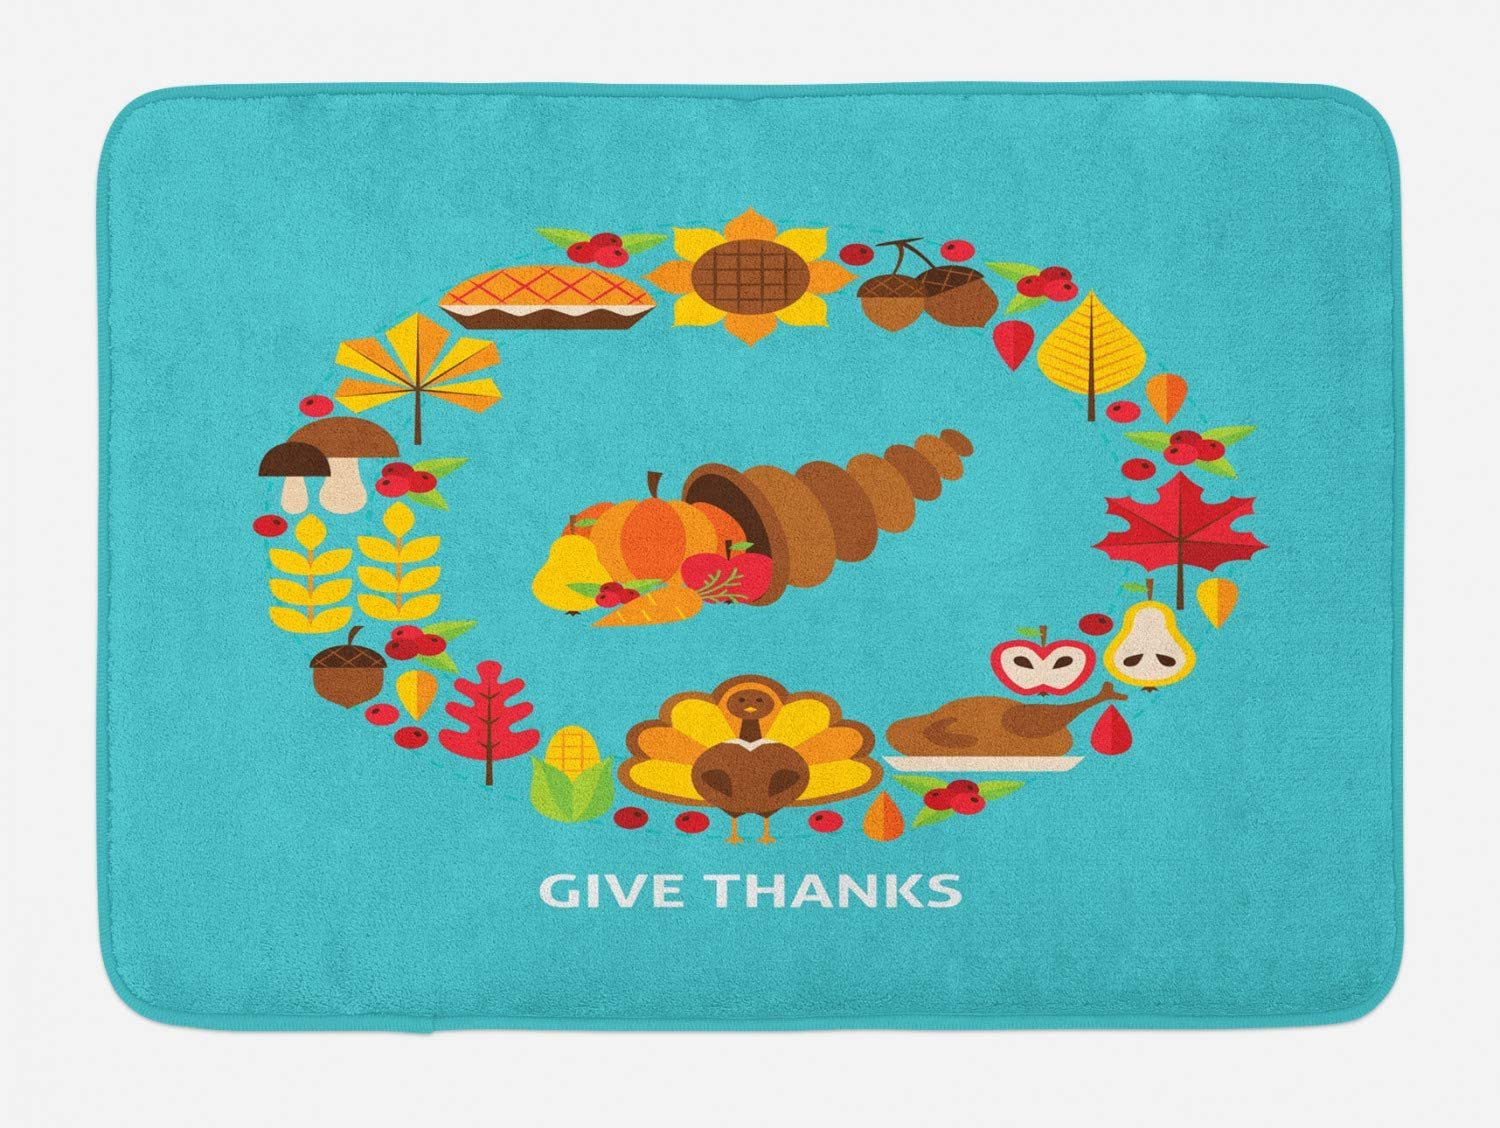 Lunarable Thanksgiving Bath Mat, Cornucopia Simple Pictogram Doodle with Give Thanks Words Food Turkey Leaves, Plush Bathroom Decor Mat with Non Slip Backing, 29.5